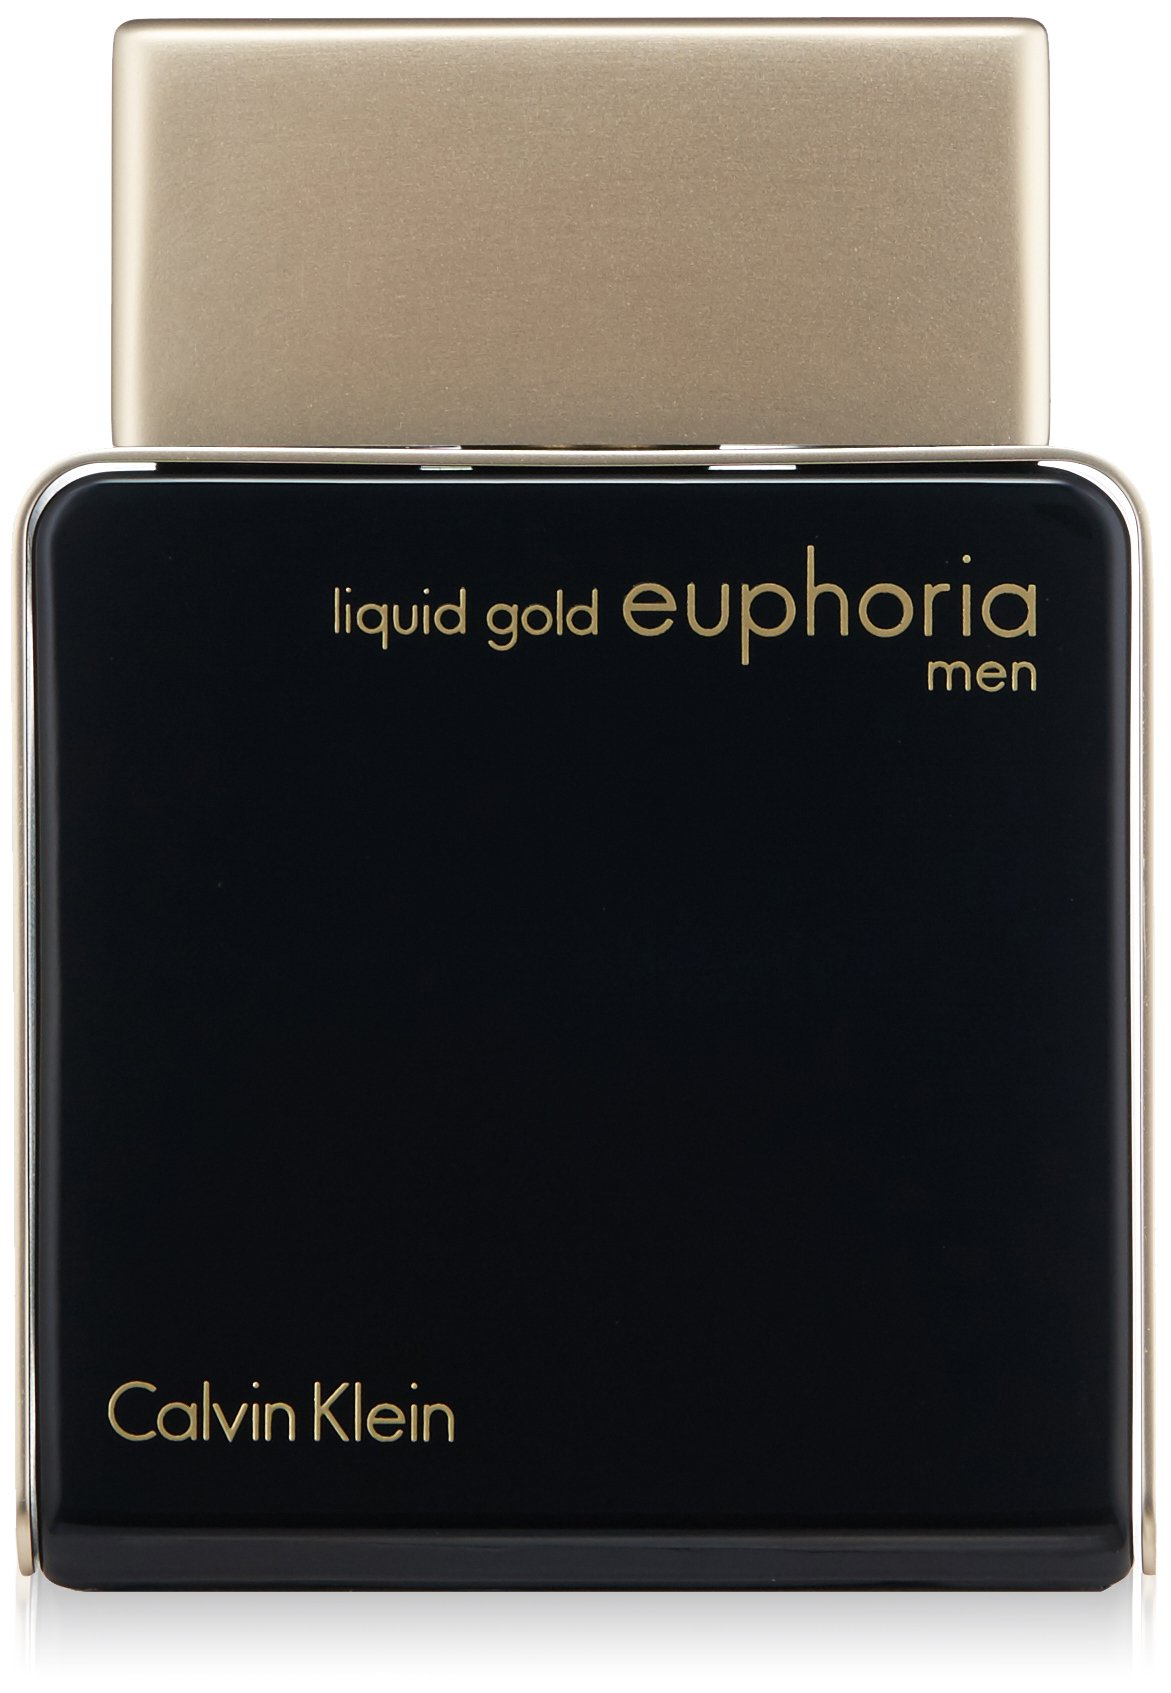 Calvin Klein Liquid Gold euphoria for Men